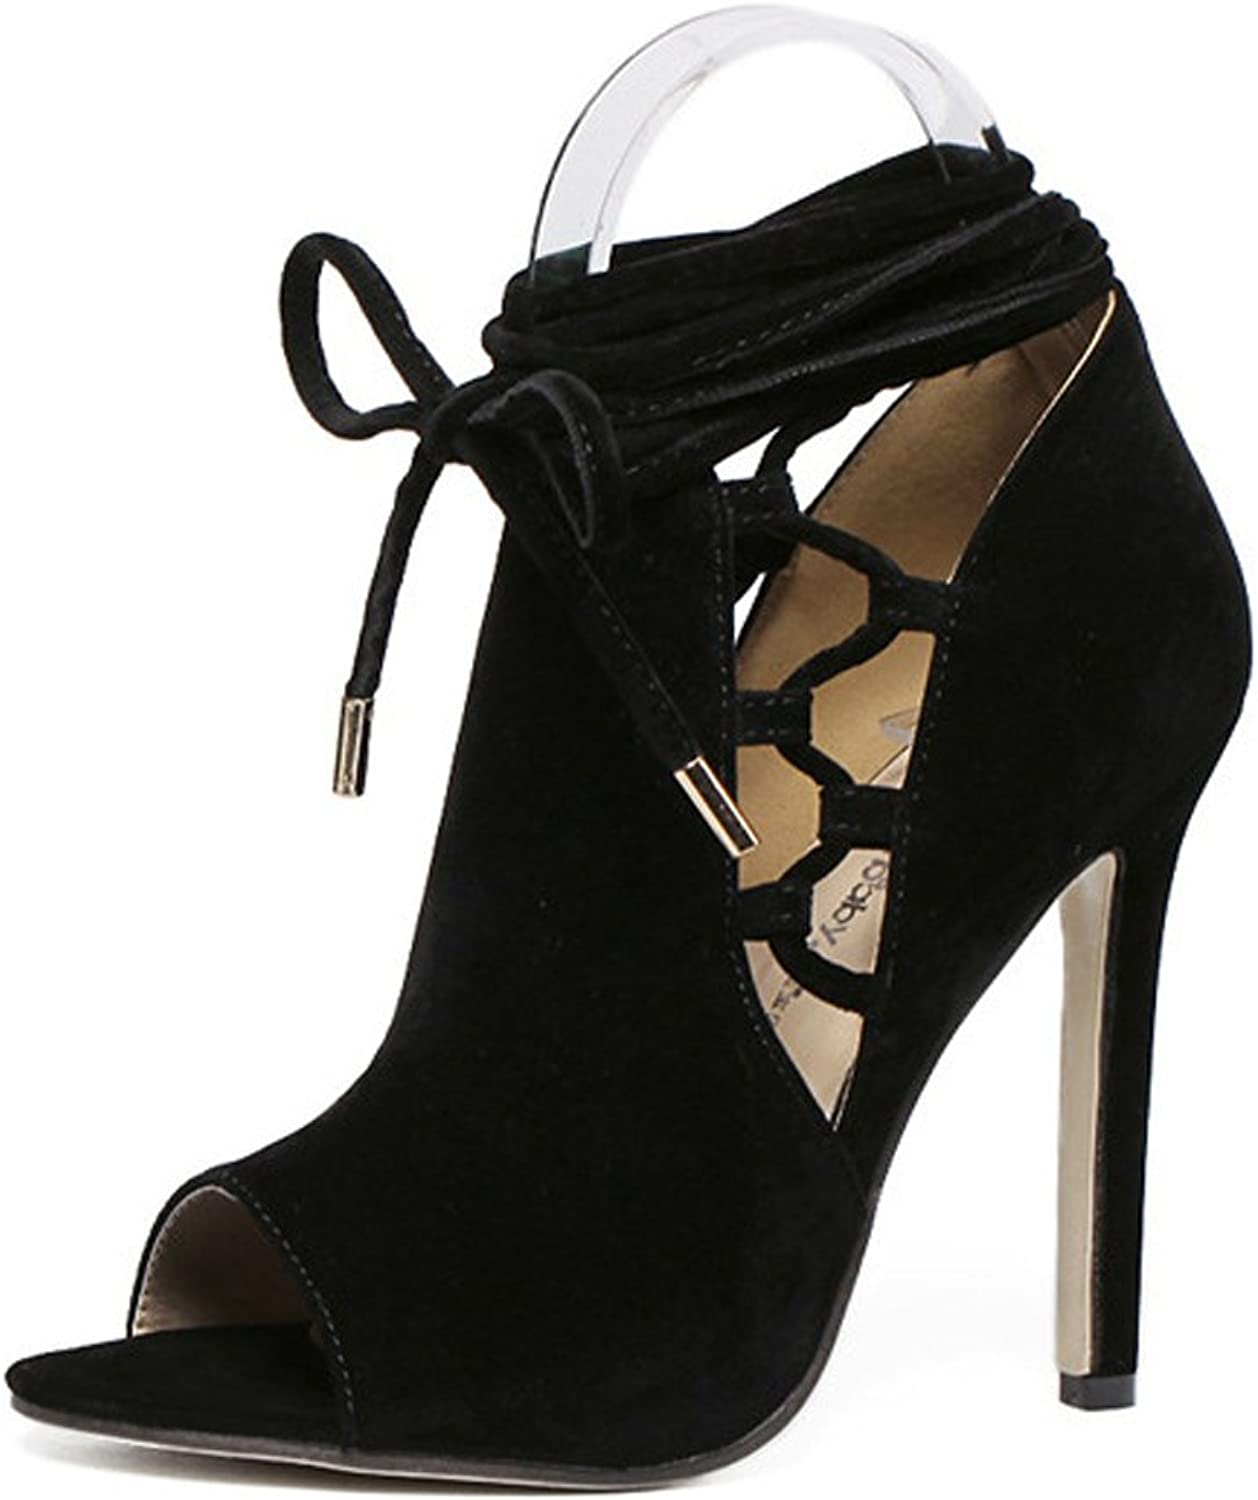 LZWSMGS Spring and Summer Suede Ladies Fish Mouth Sandals Cross Straps High Heels Street Nightclub Fashion shoes Black 35-40cm Ladies Sandals (color   Black, Size   37)